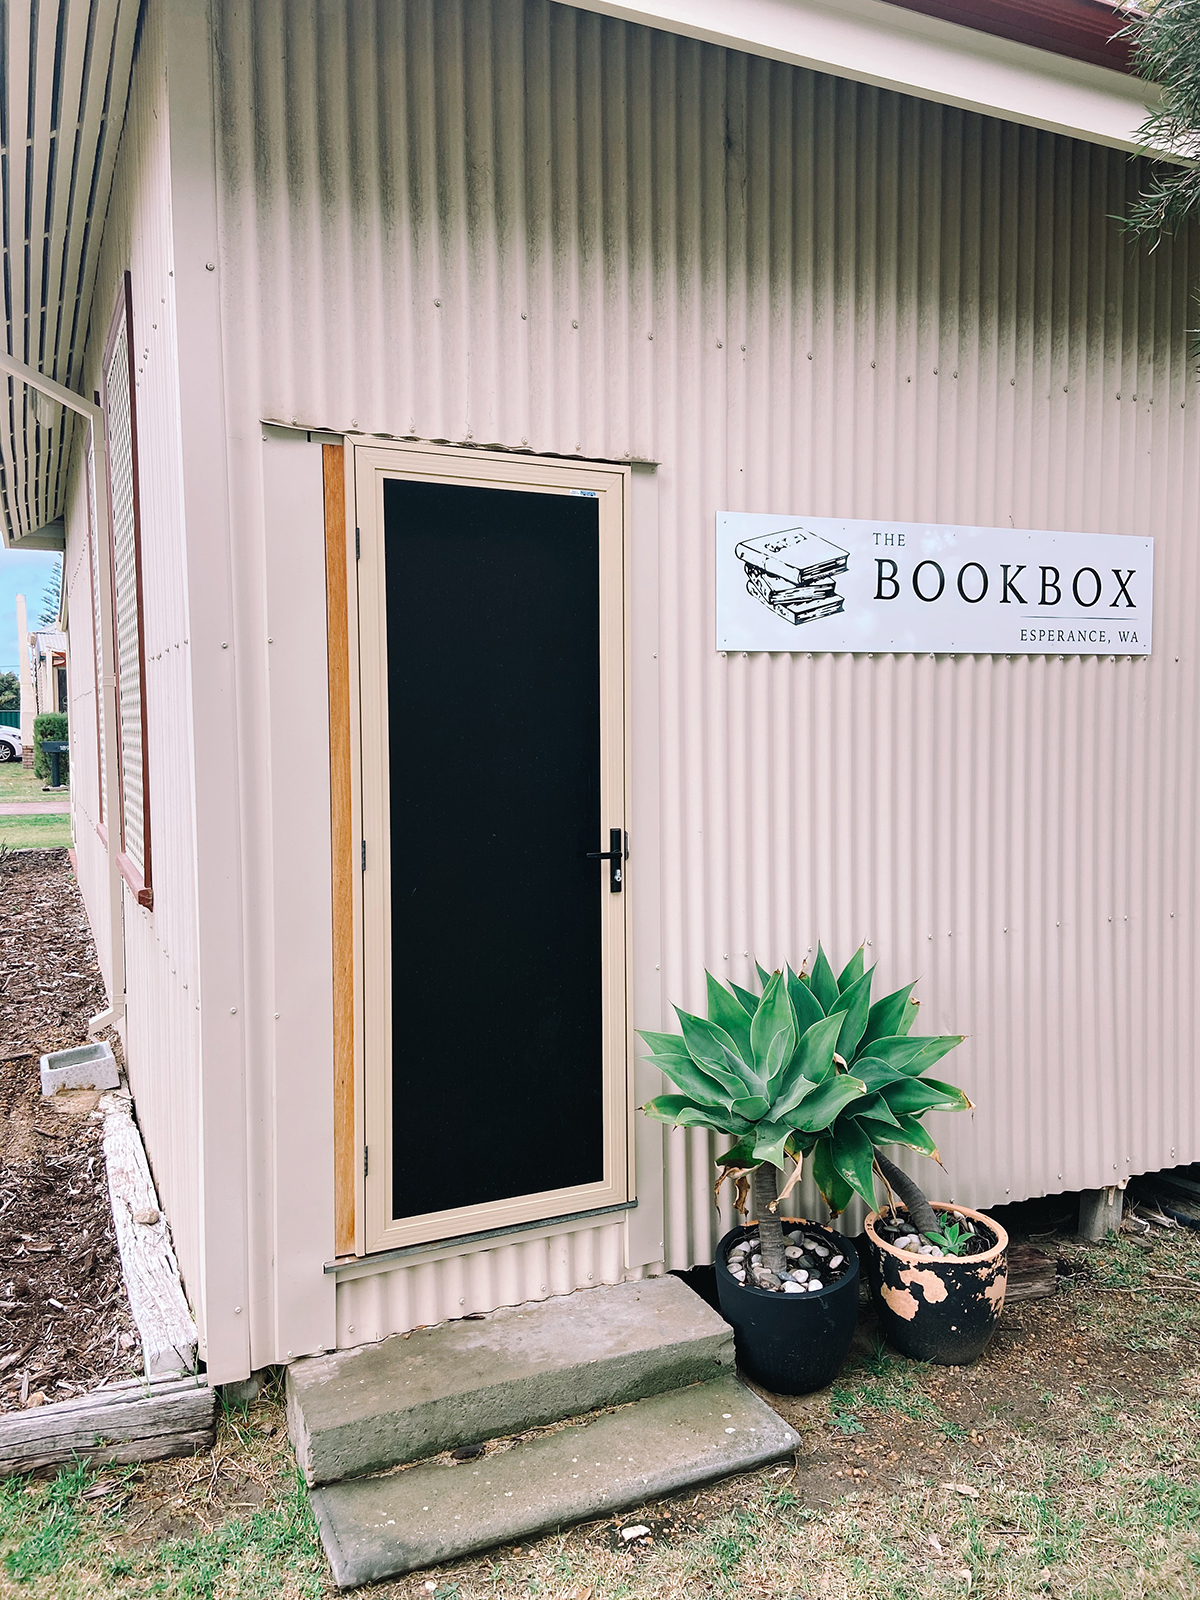 Book Box Esperance building exterior